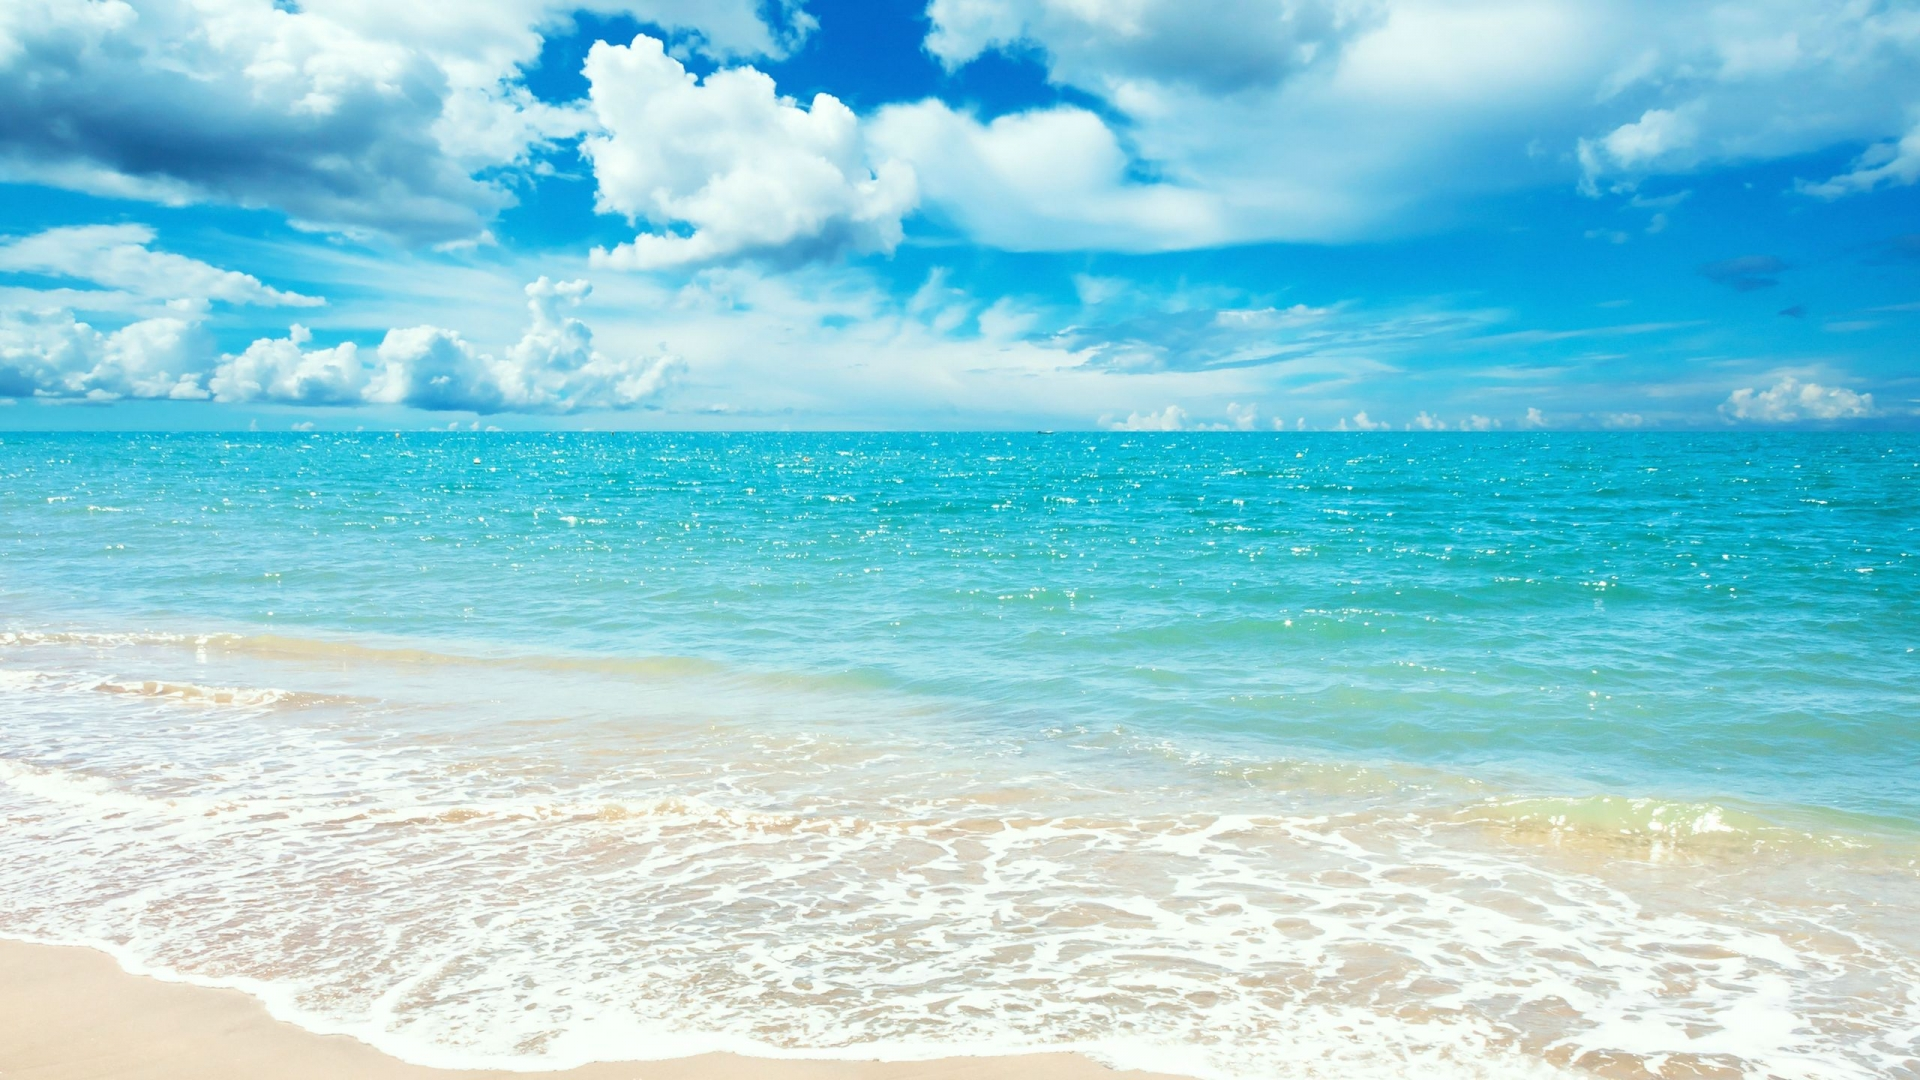 Summer Beach Wallpaper HD Widescreen cute Wallpapers 1920x1080